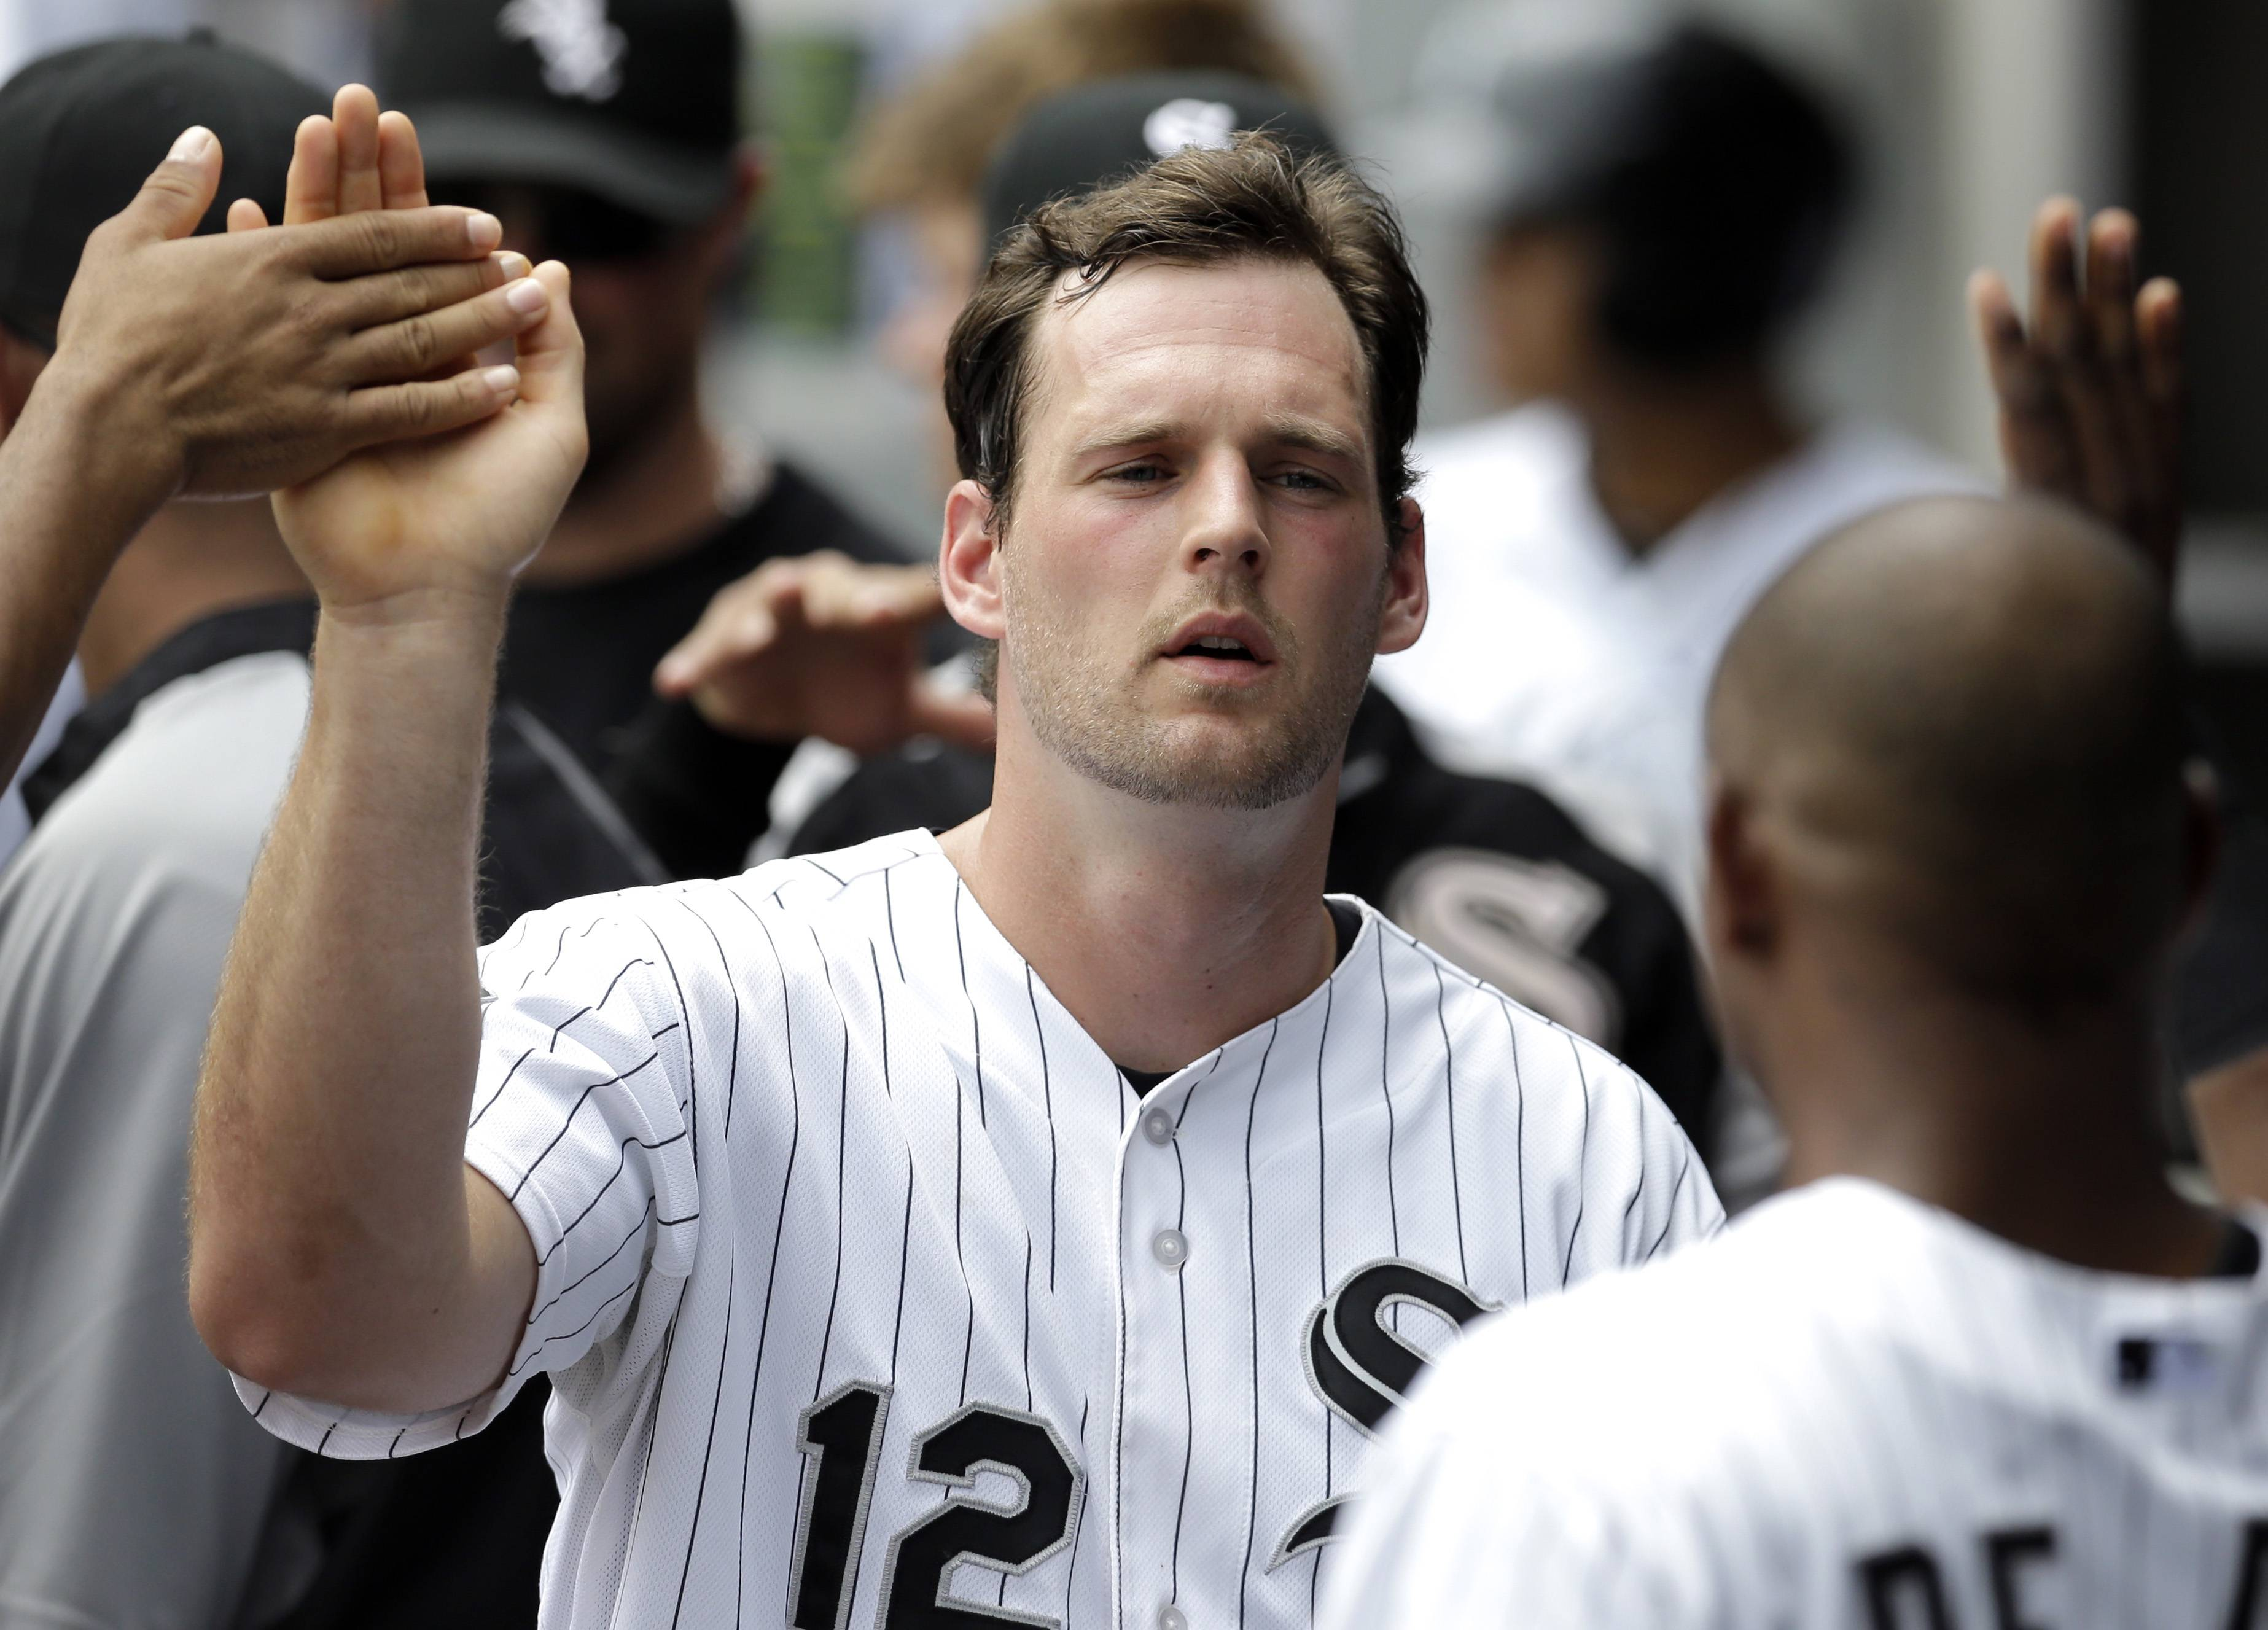 After struggling in 2013, Conor Gillaspie's batting average has stayed above .300 all season, and the White Sox third baseman is hitting .370 with runners on base.